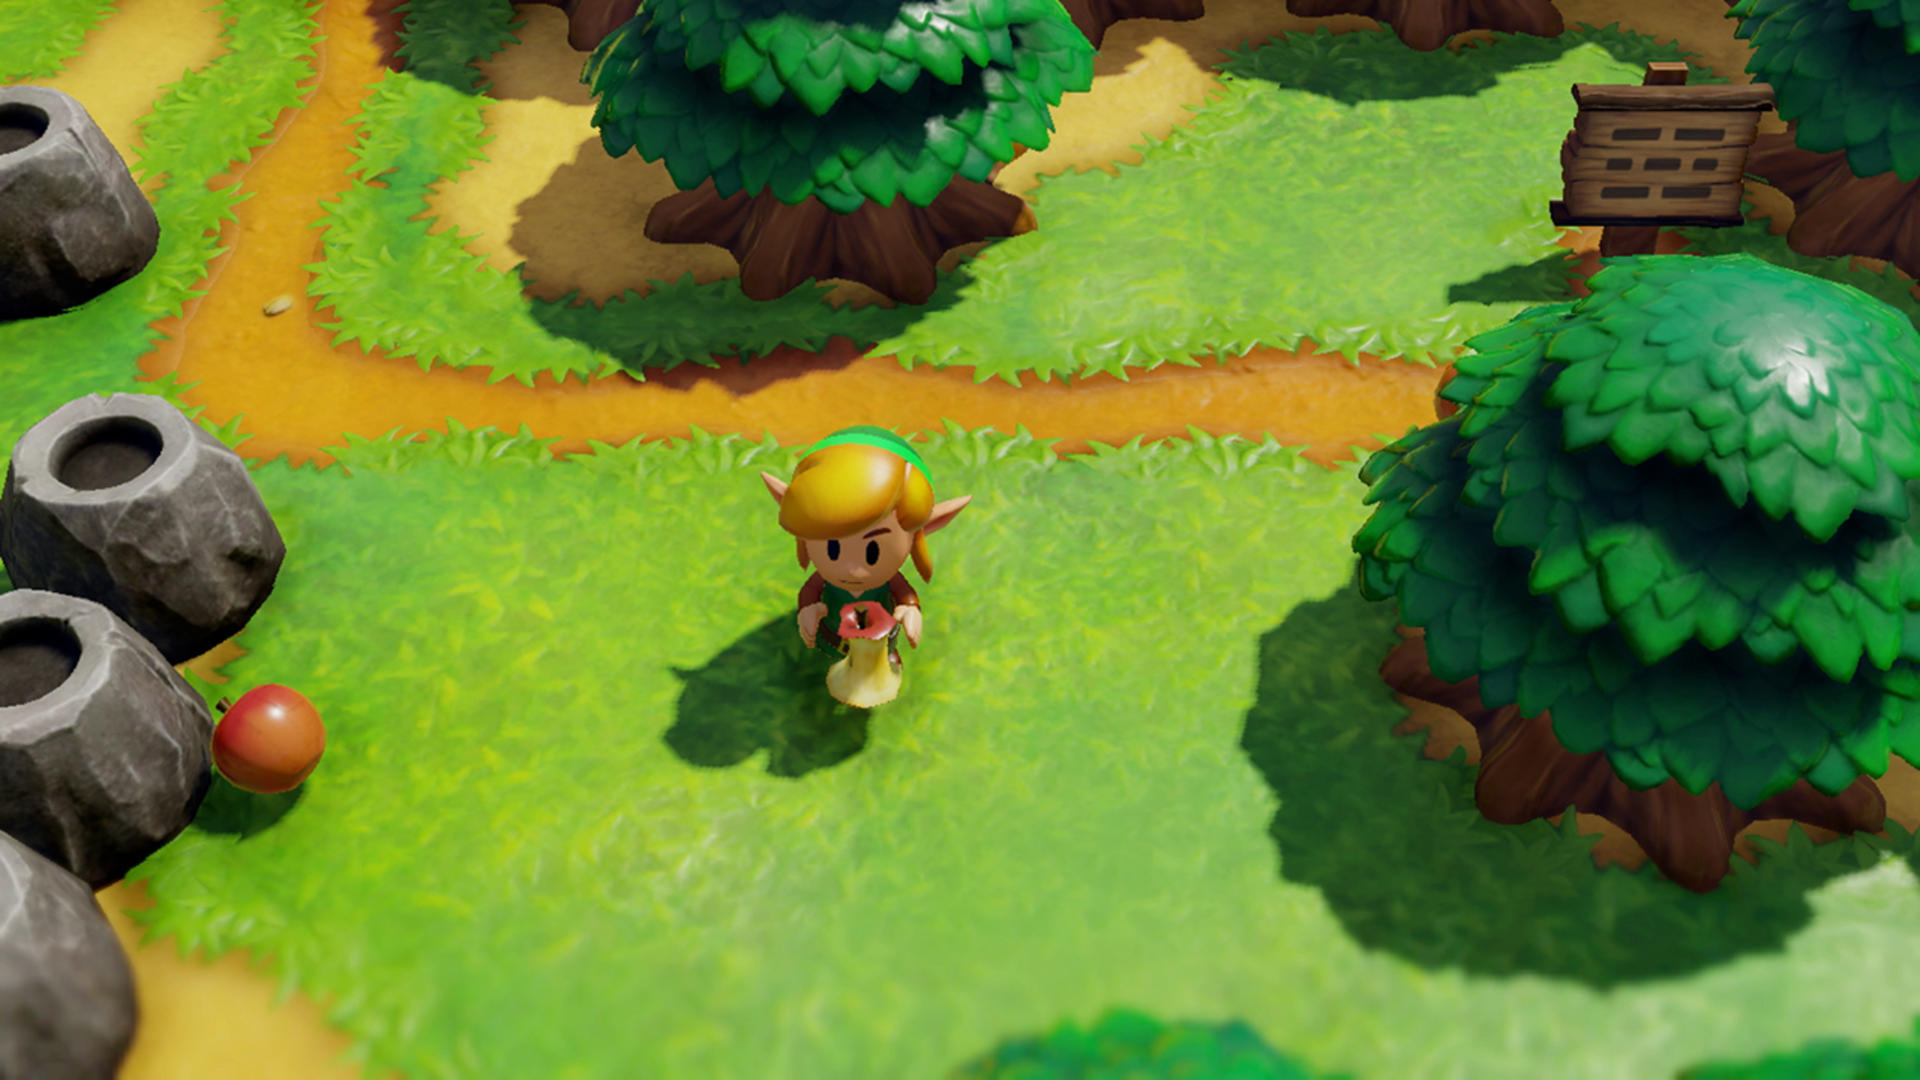 Video: Digital Foundry Explores Zelda: Link's Awakening's Technical Wins And Losses